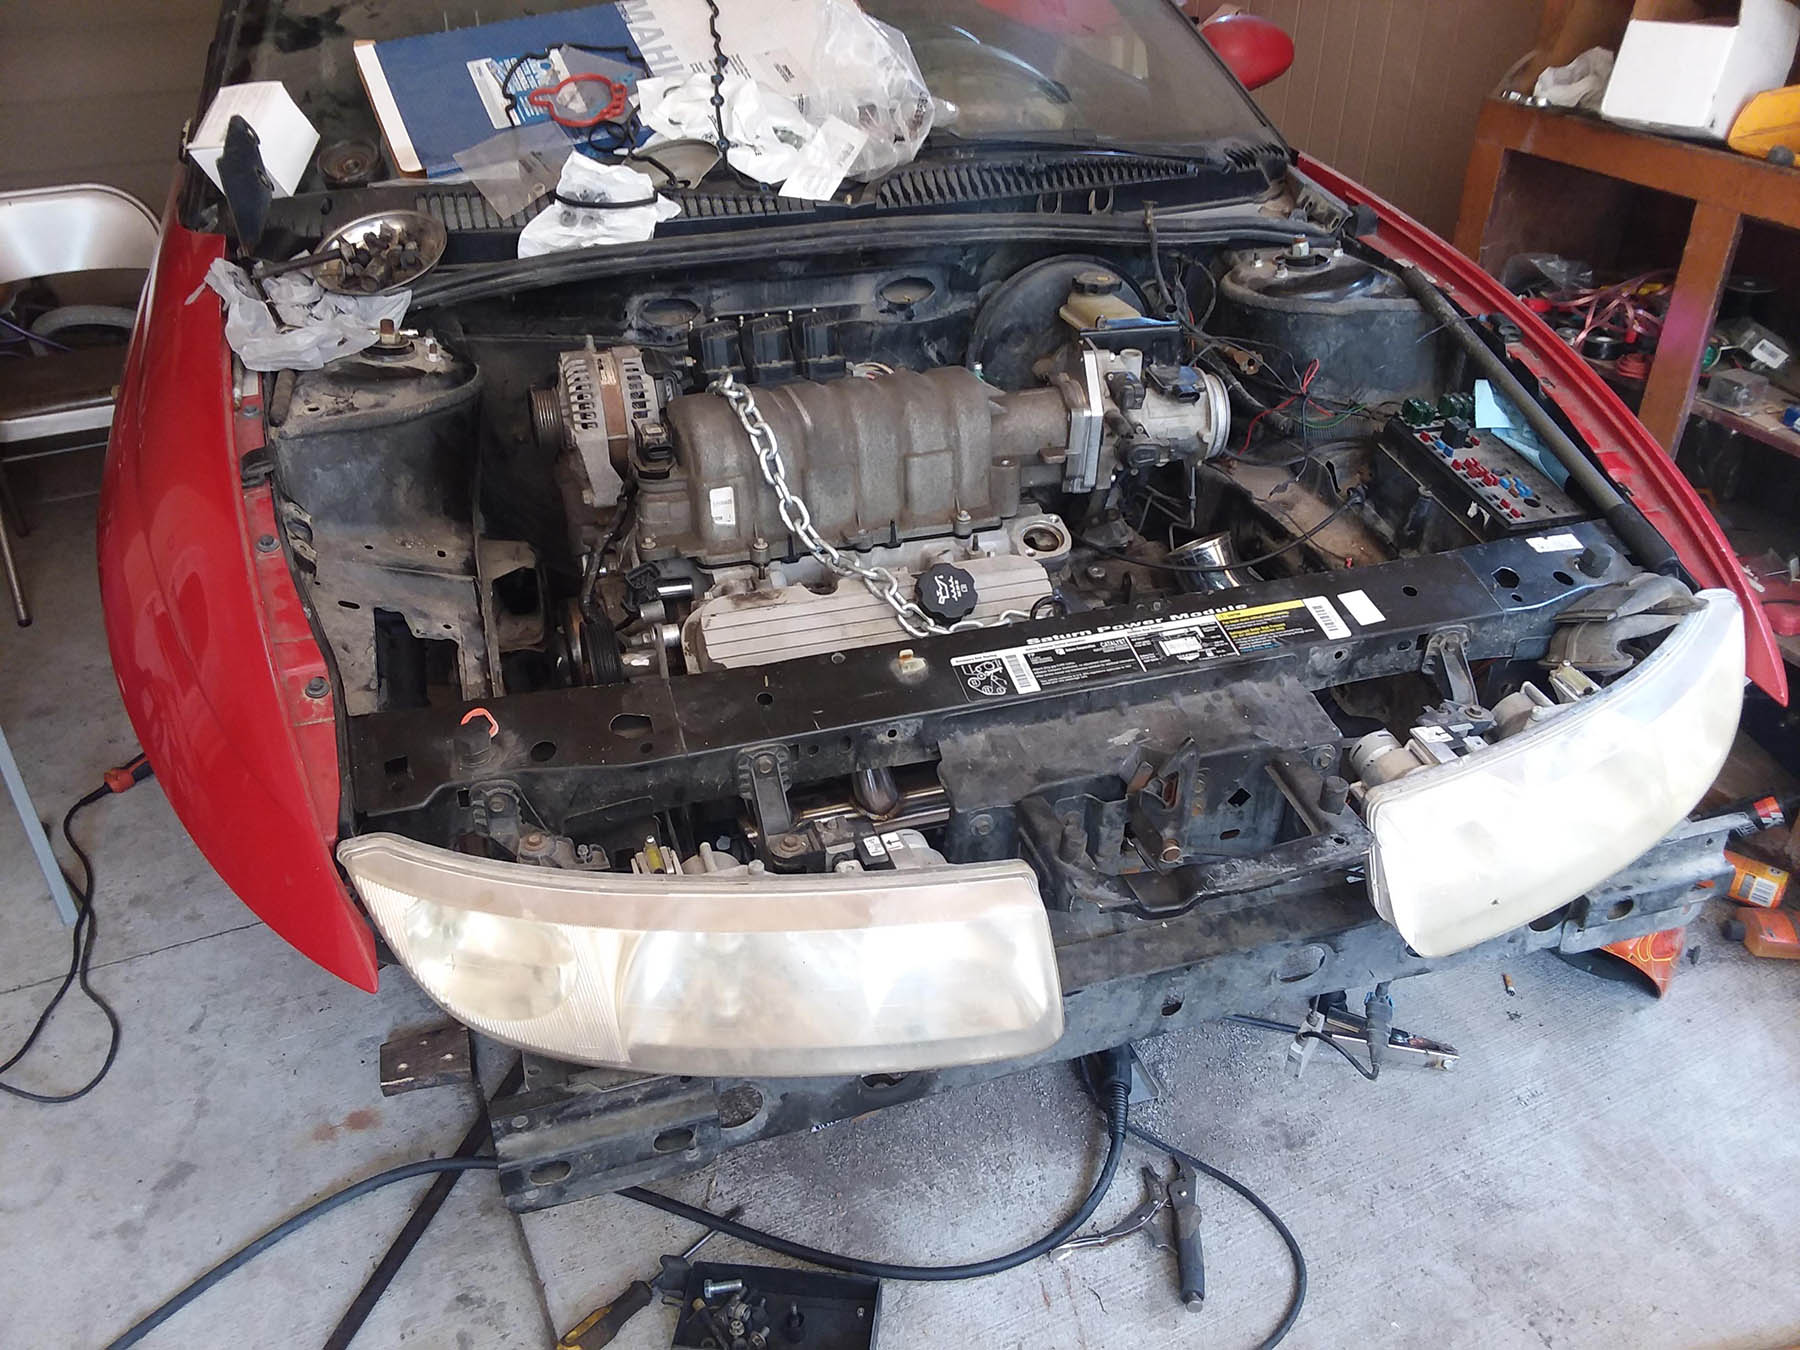 Building A 1997 Saturn Sc2 With A Turbo 3800 V6